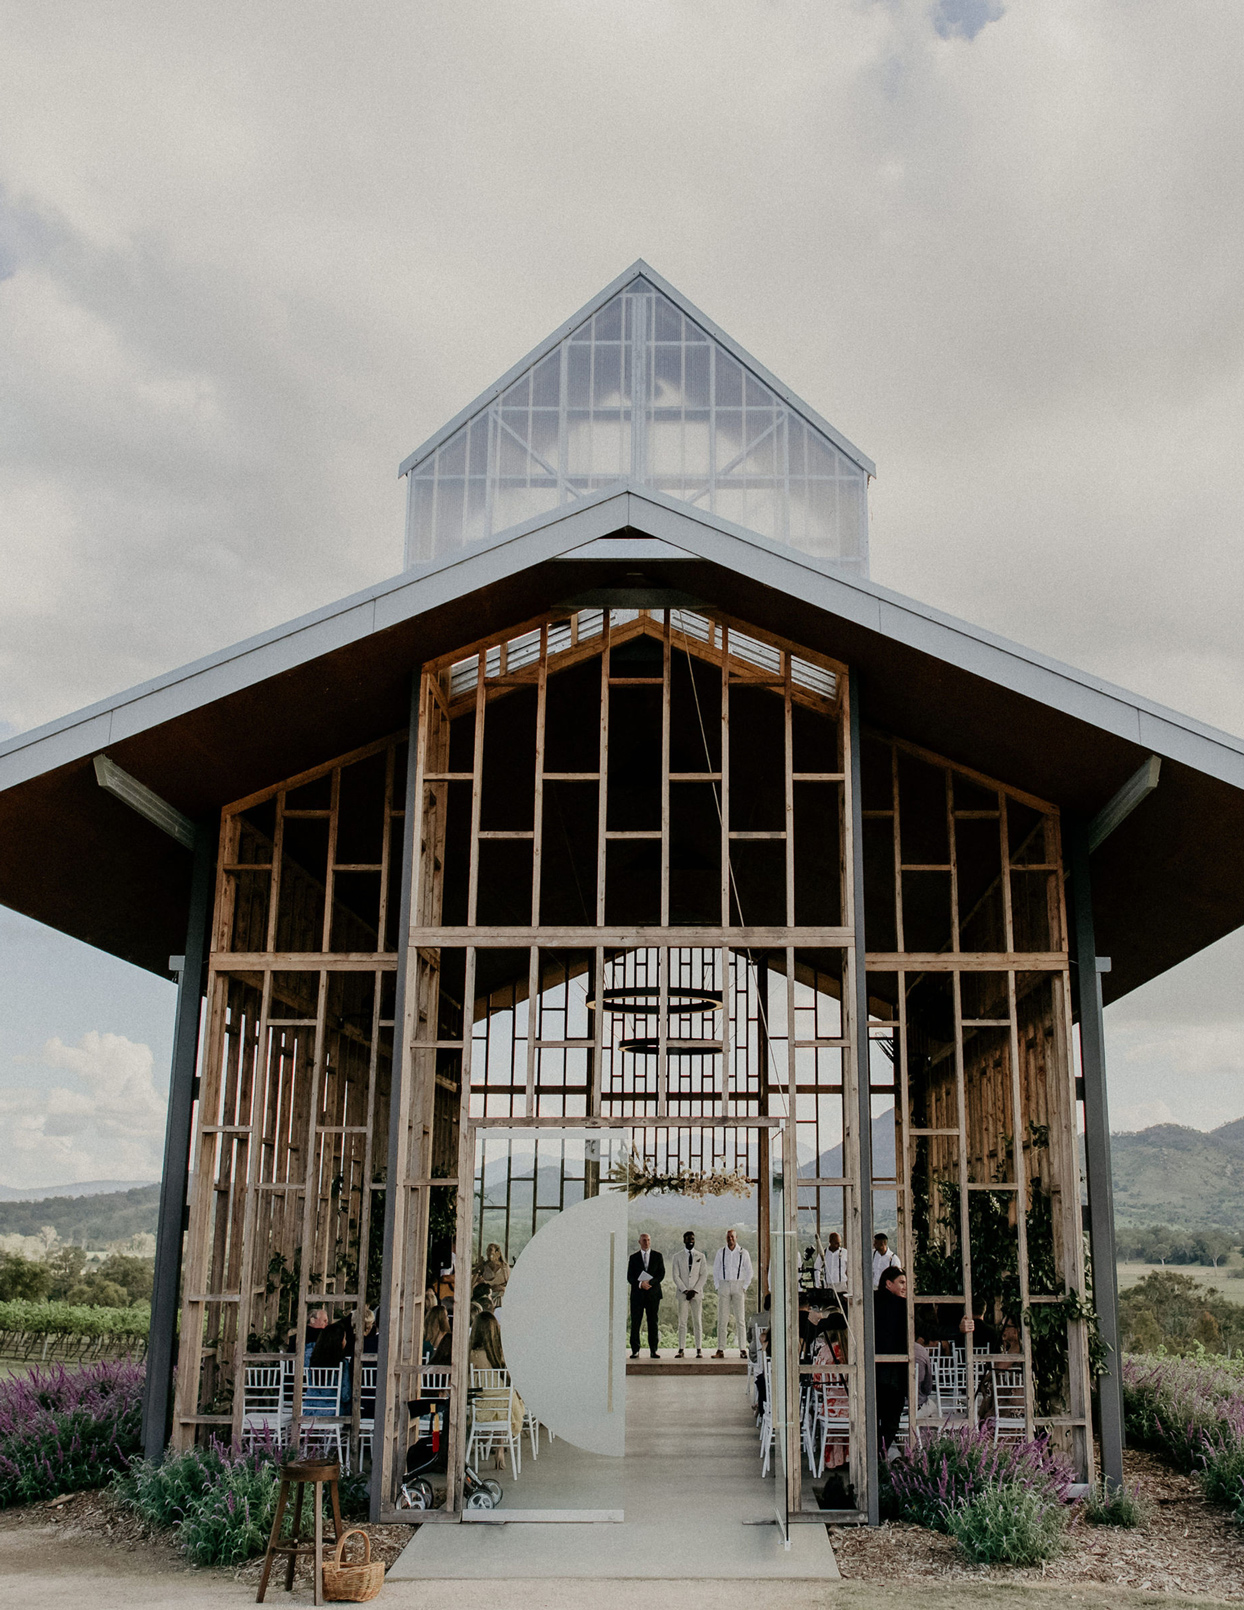 wide shot of wedding chapel building with groom and guests inside